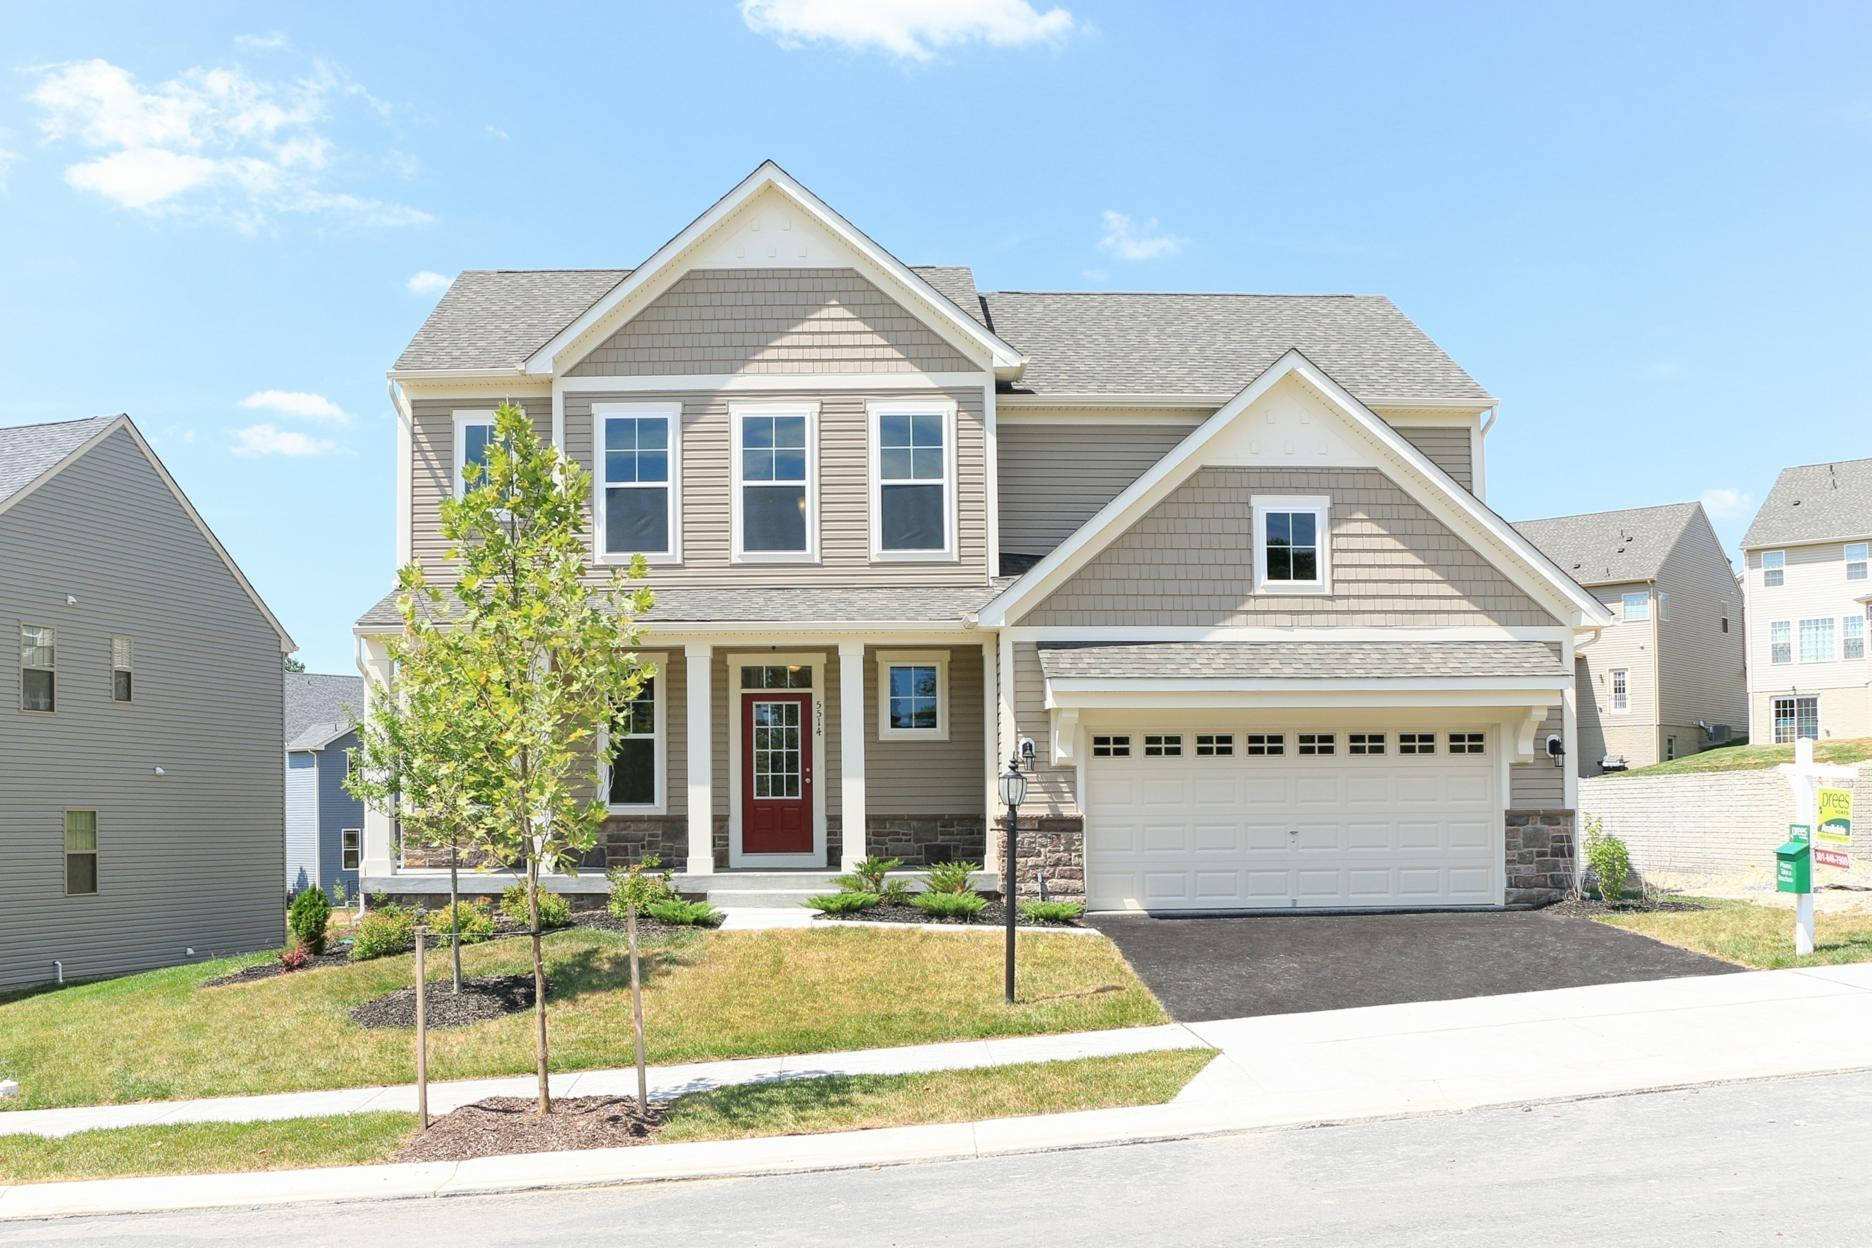 Single Family for Active at Wycliff 5514 Golden Eagle Road Frederick, Maryland 21704 United States